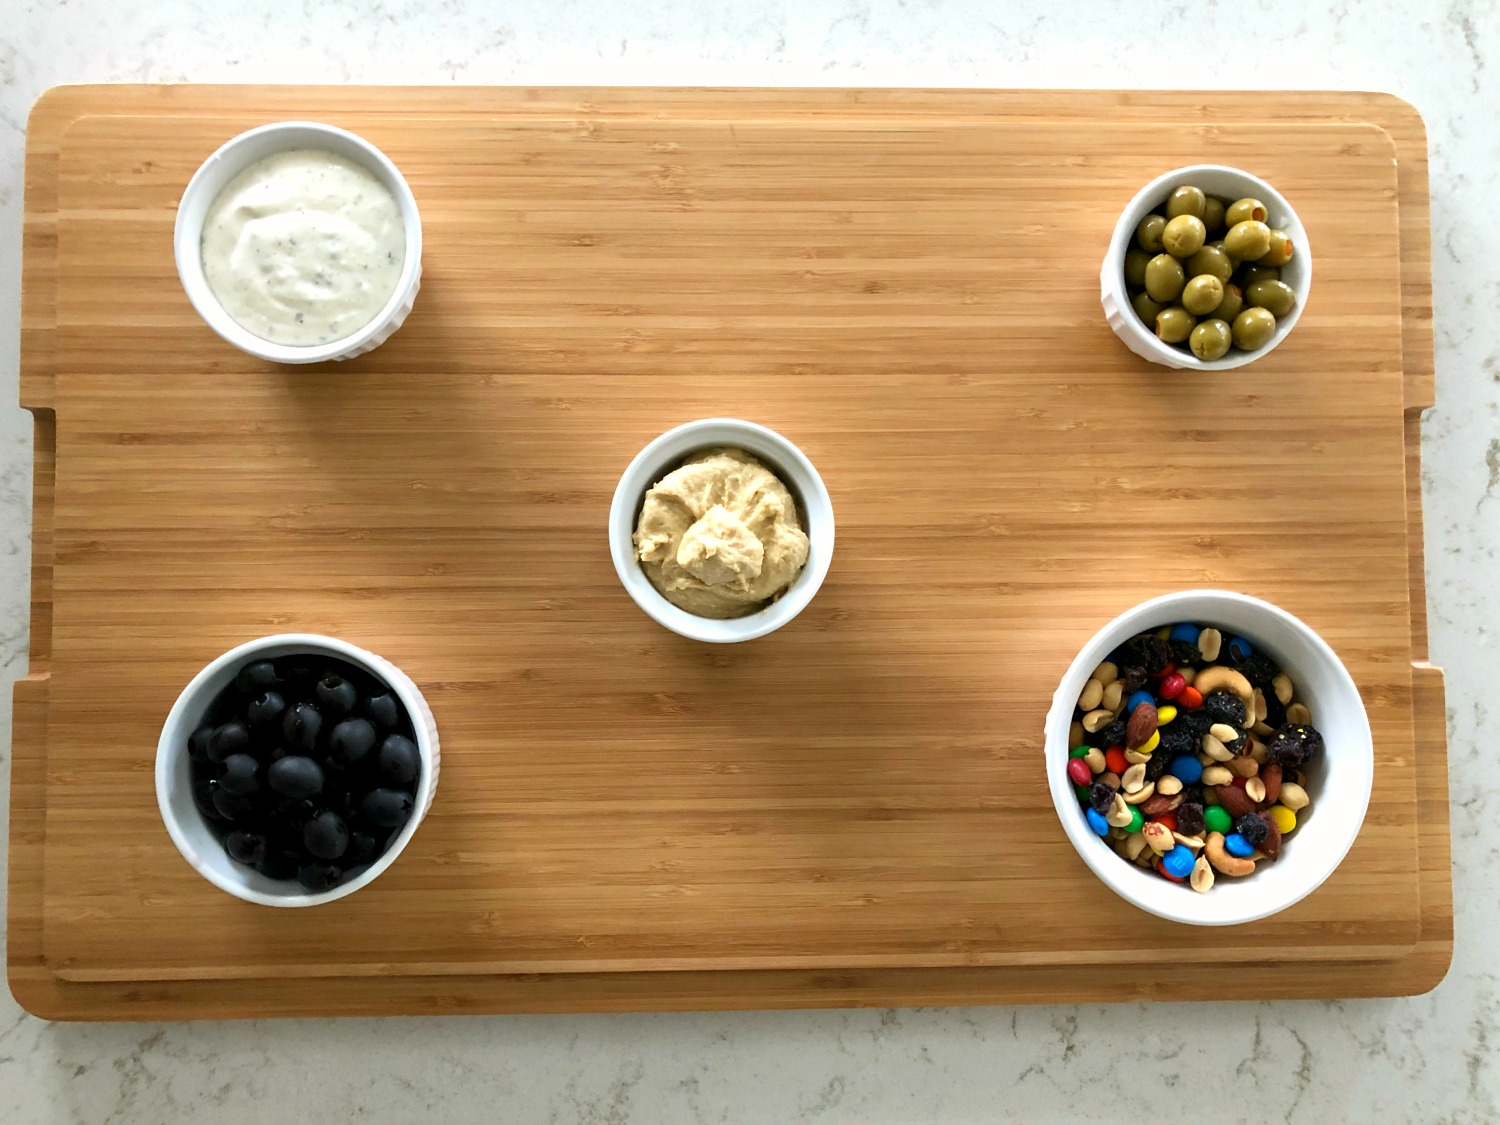 white bowls filled with hummus, ranch, olives, and trail mix spread out on a cutting board